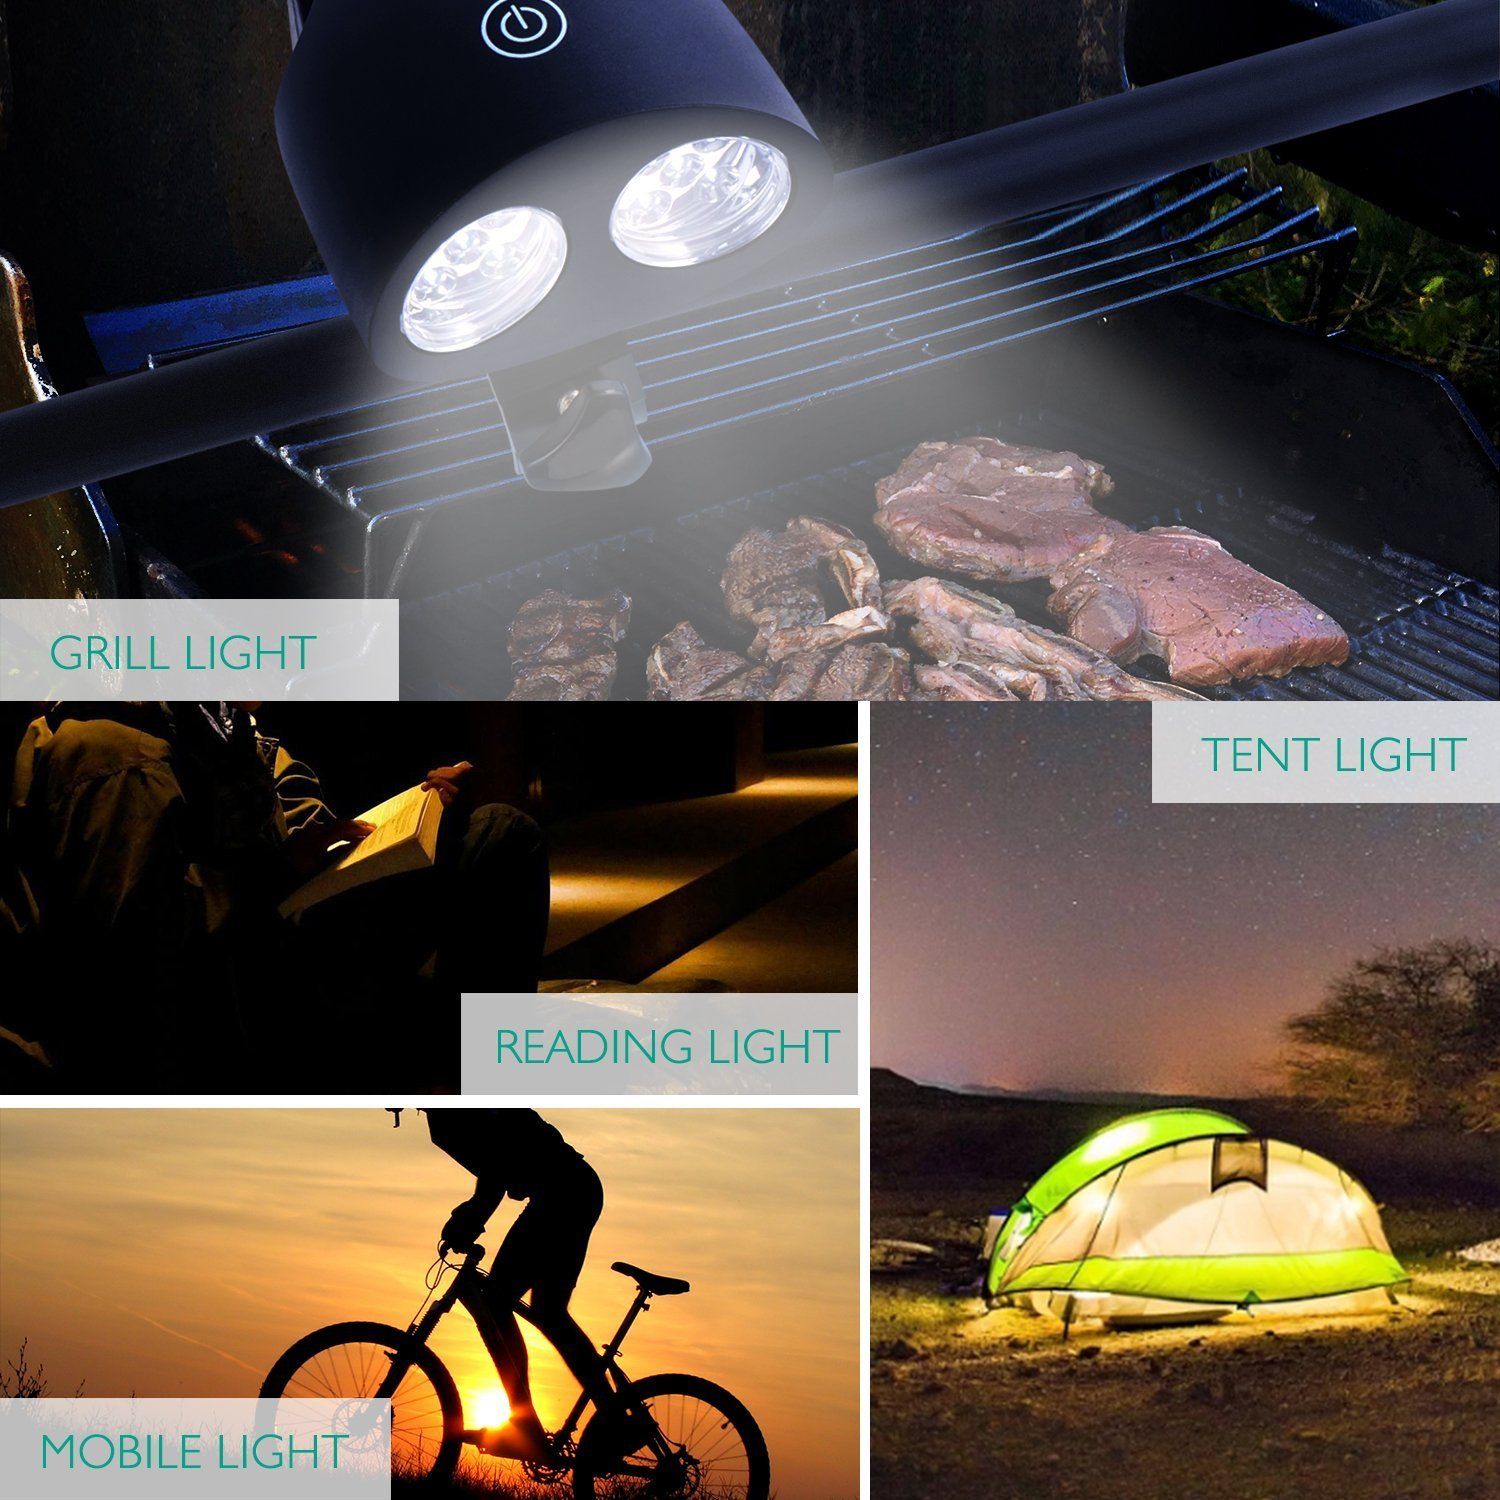 TomCare Grill Light 10 LED Super Bright Barbecue Grill Lights Weather Resistant 120 Lumen 360 Degree Rotation BBQ Light Outdoor Grill Light Accessories Barbecue Accessories Handle Mount for BBQ(1)